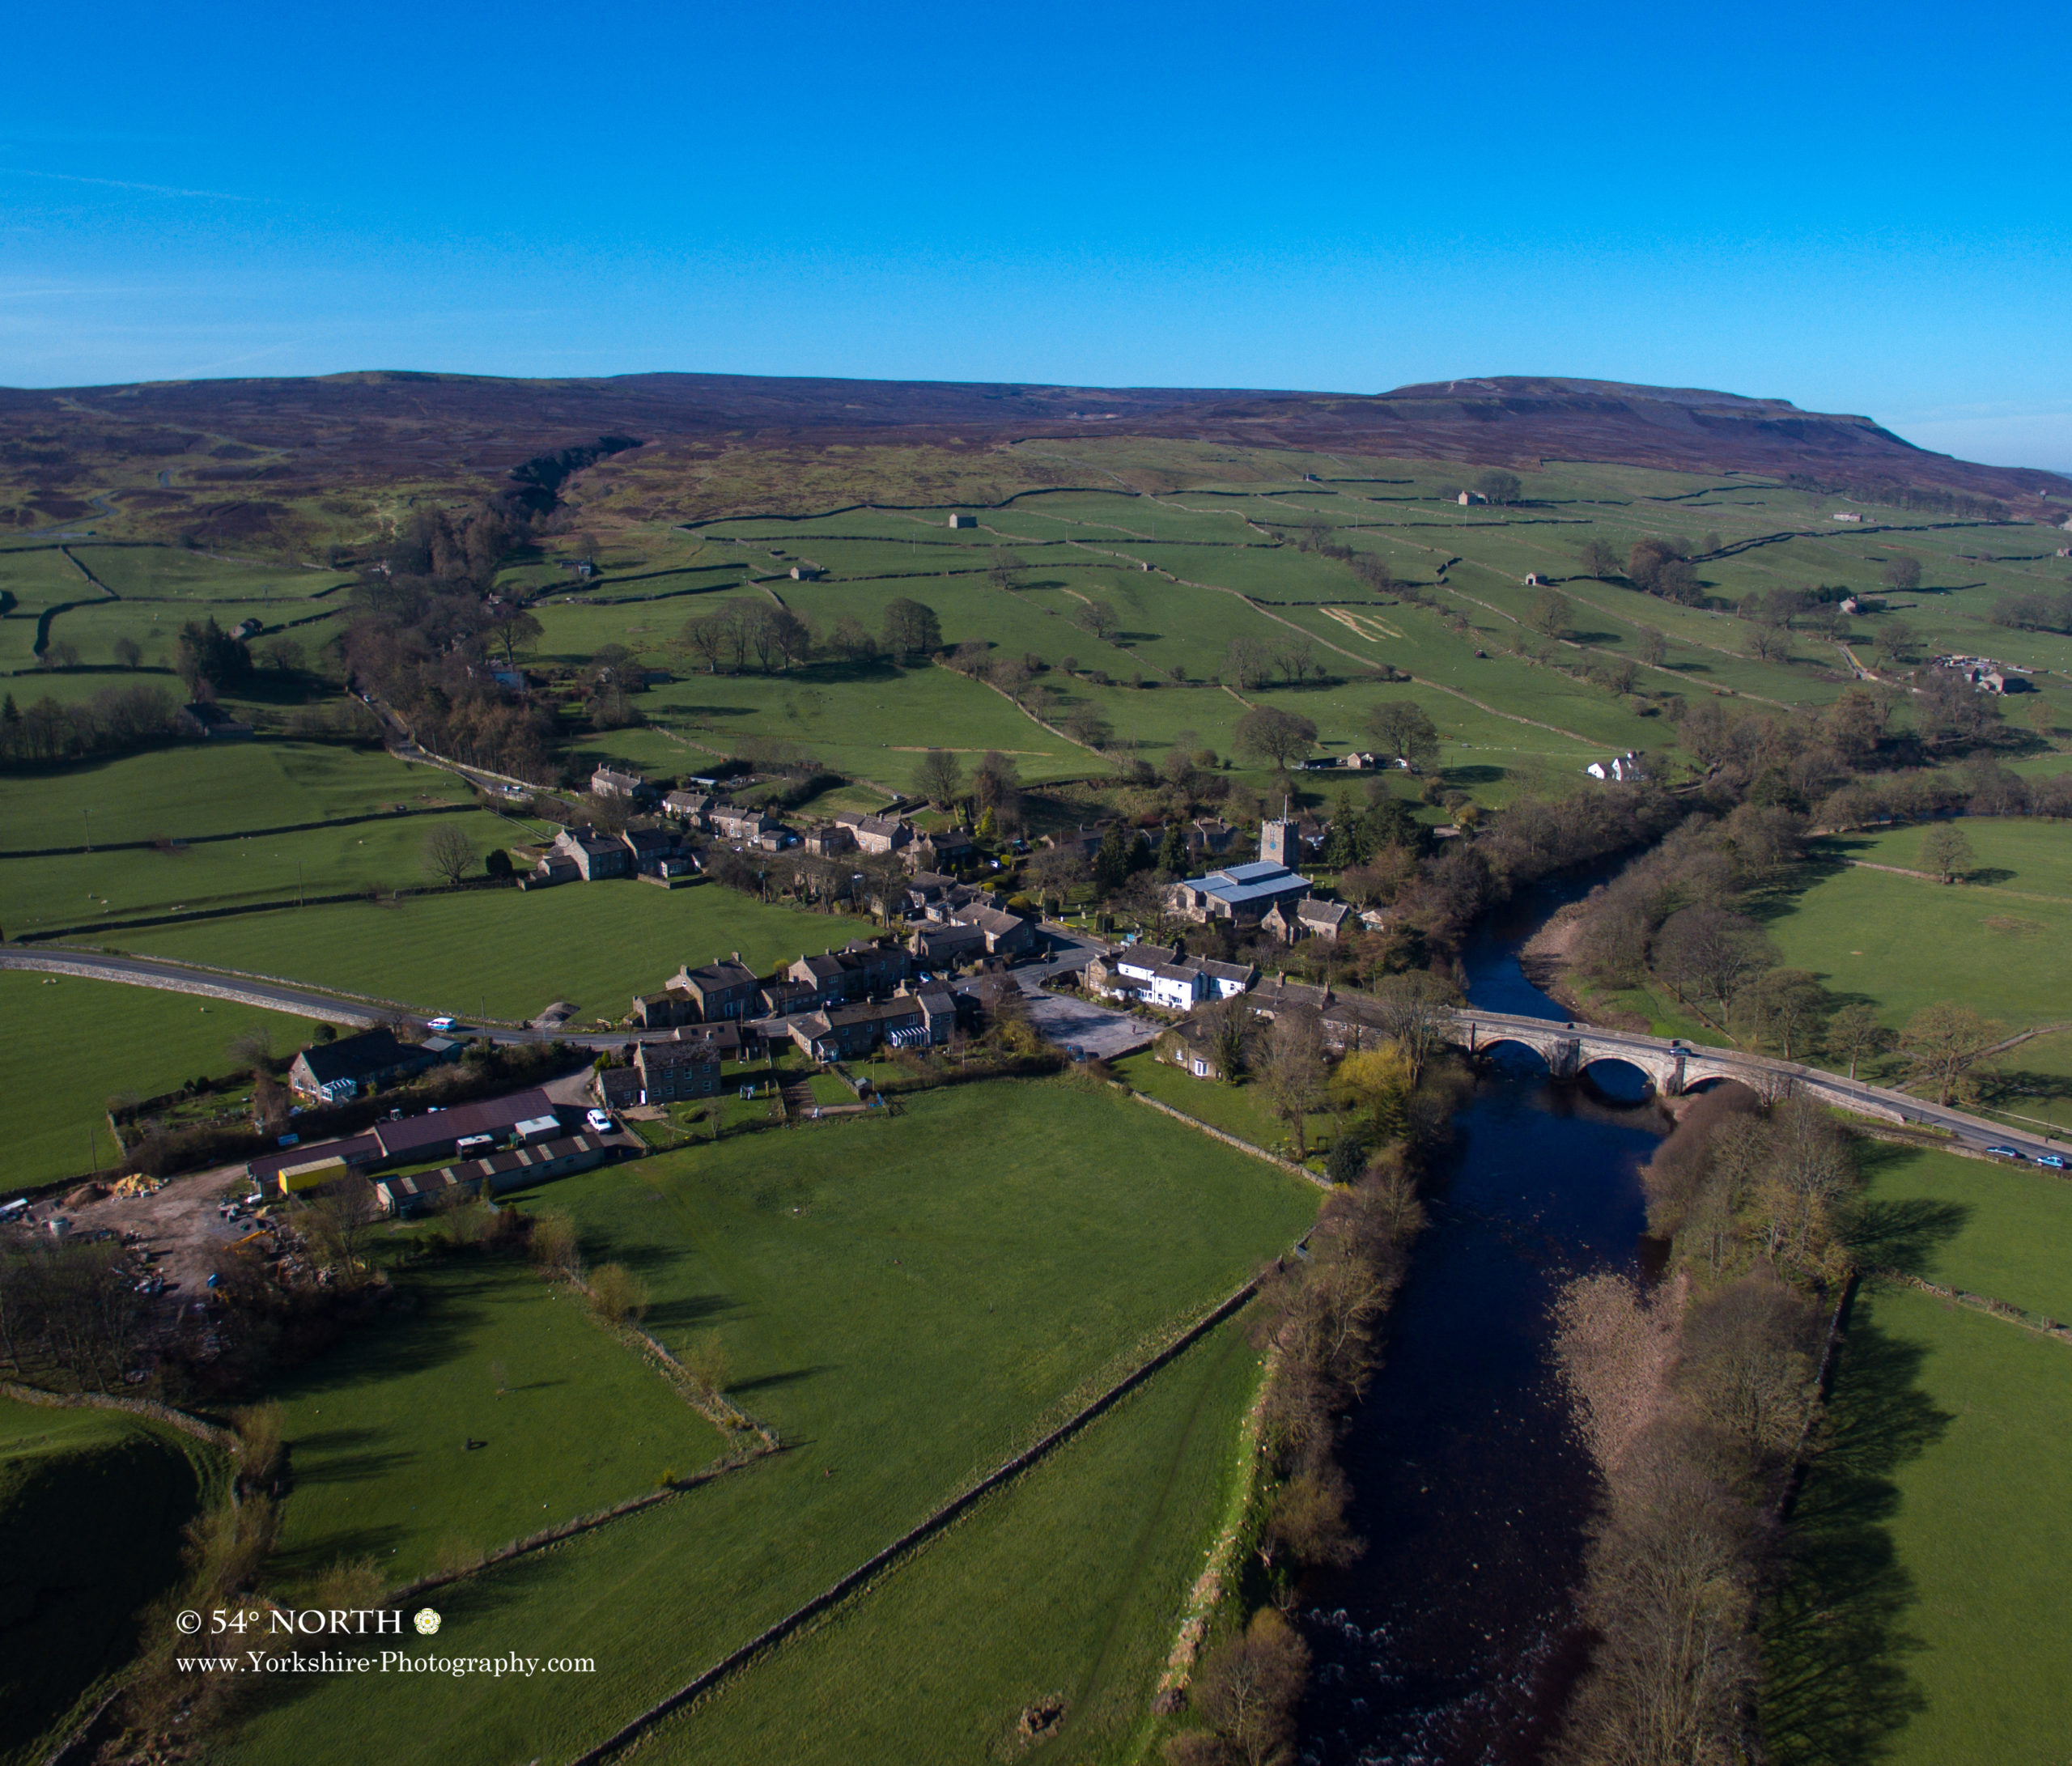 Aerial photo of Grinton, Swaledale